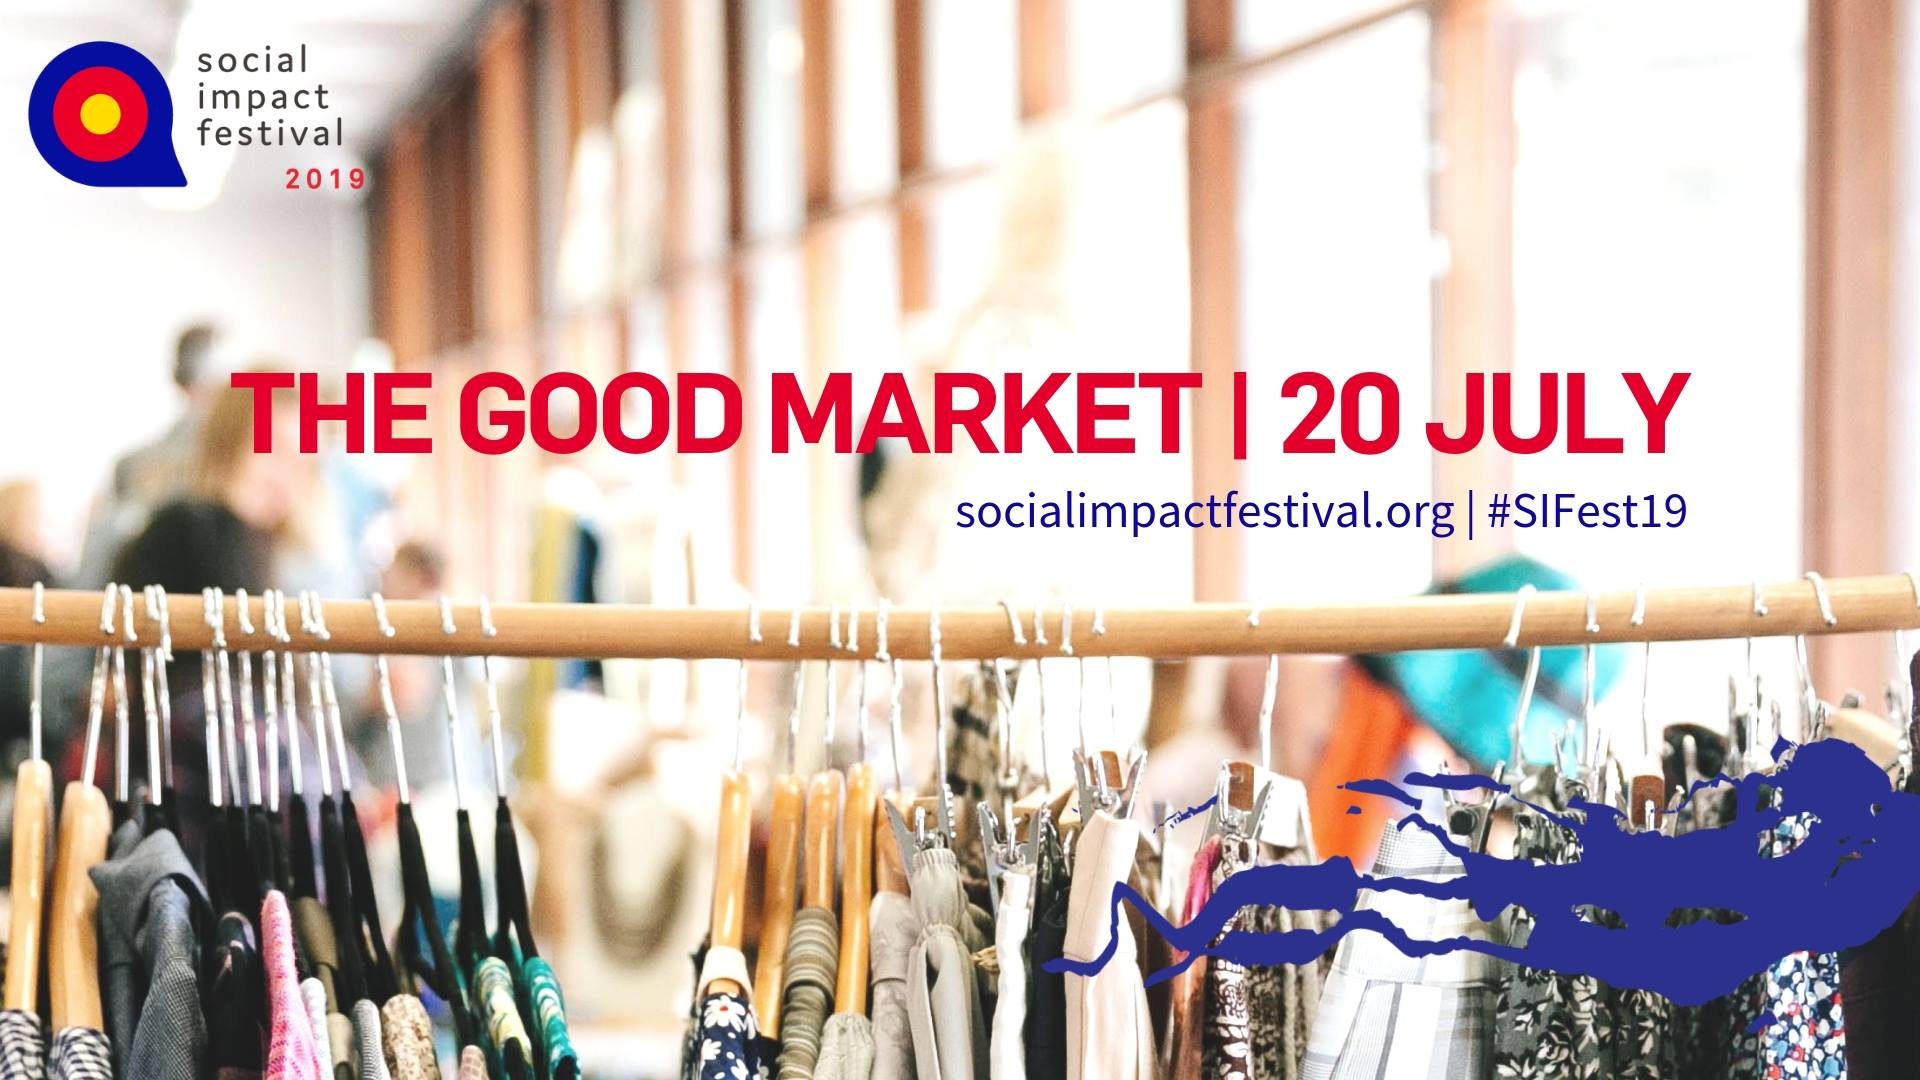 The Good Market – Social Impact Festival